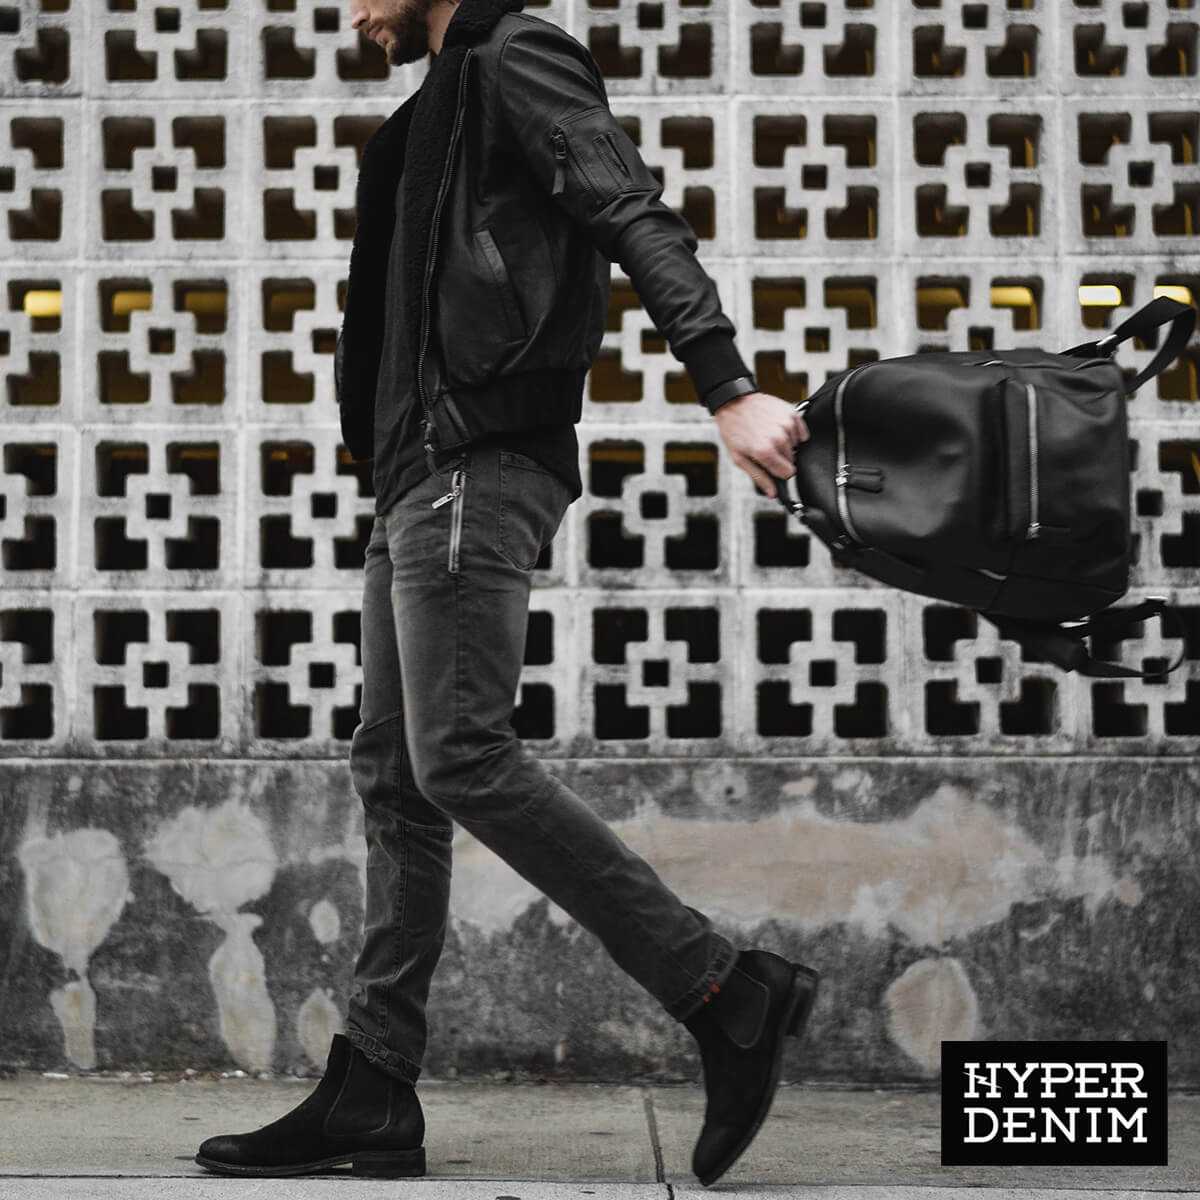 a man wearing an all black streetwear outfit